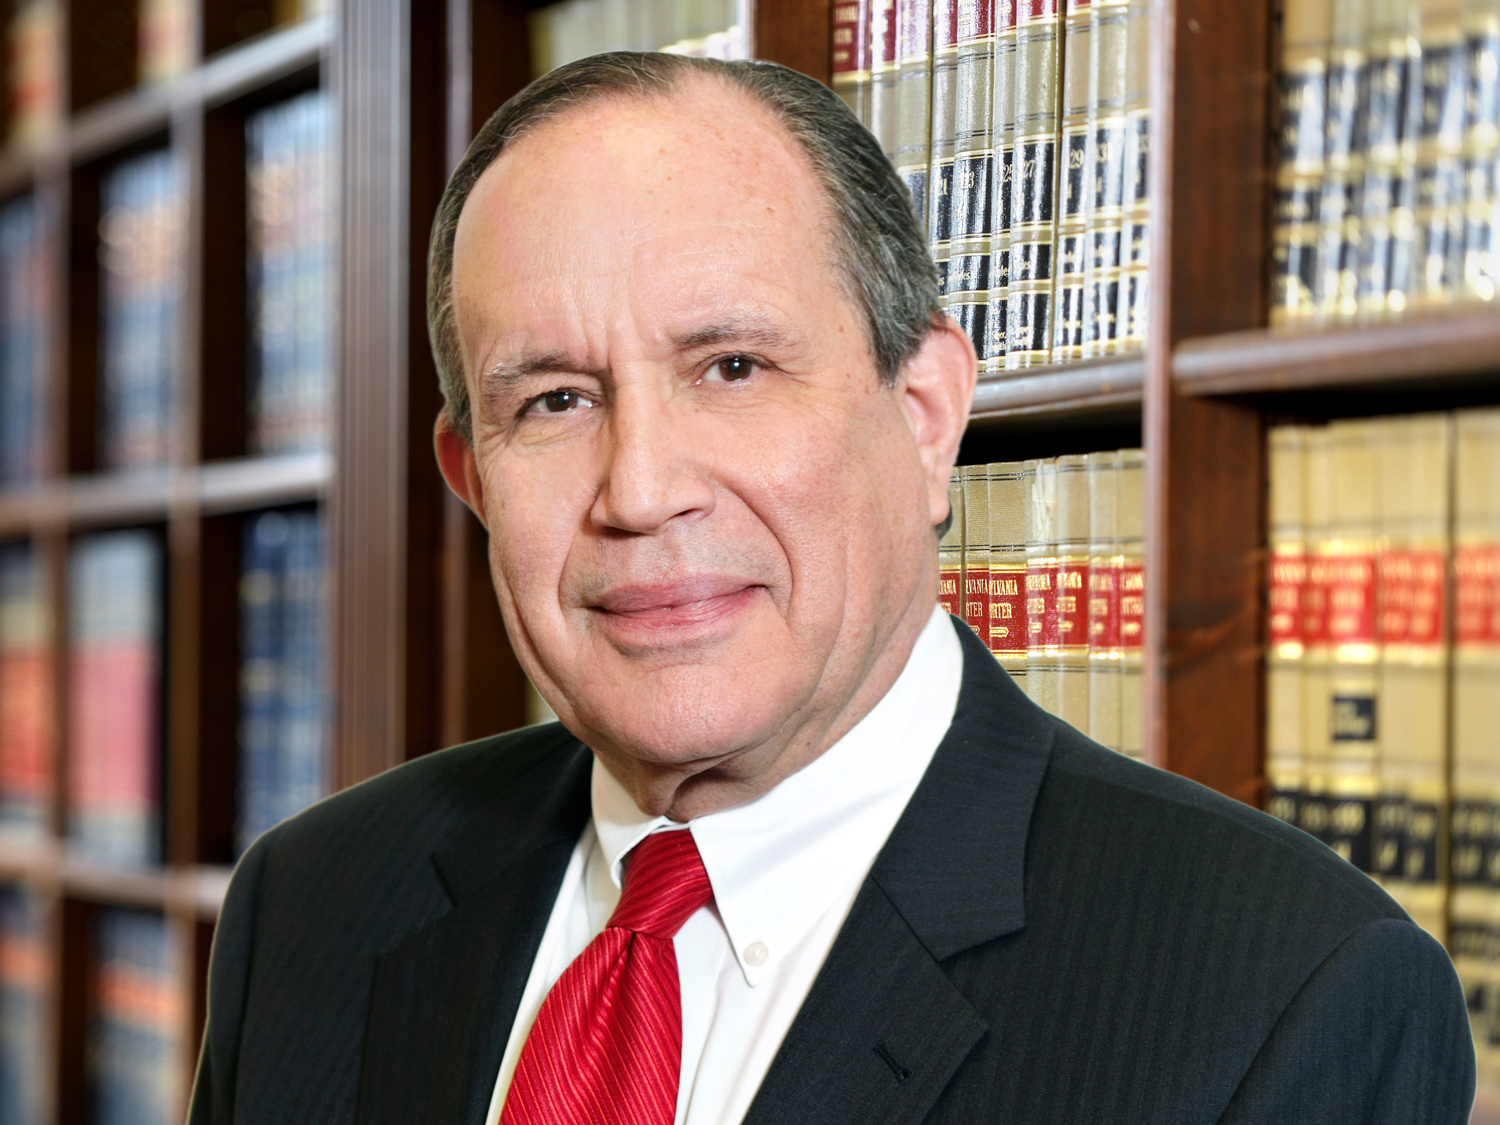 high swartz labor and employment attorney thomas d. rees portrait